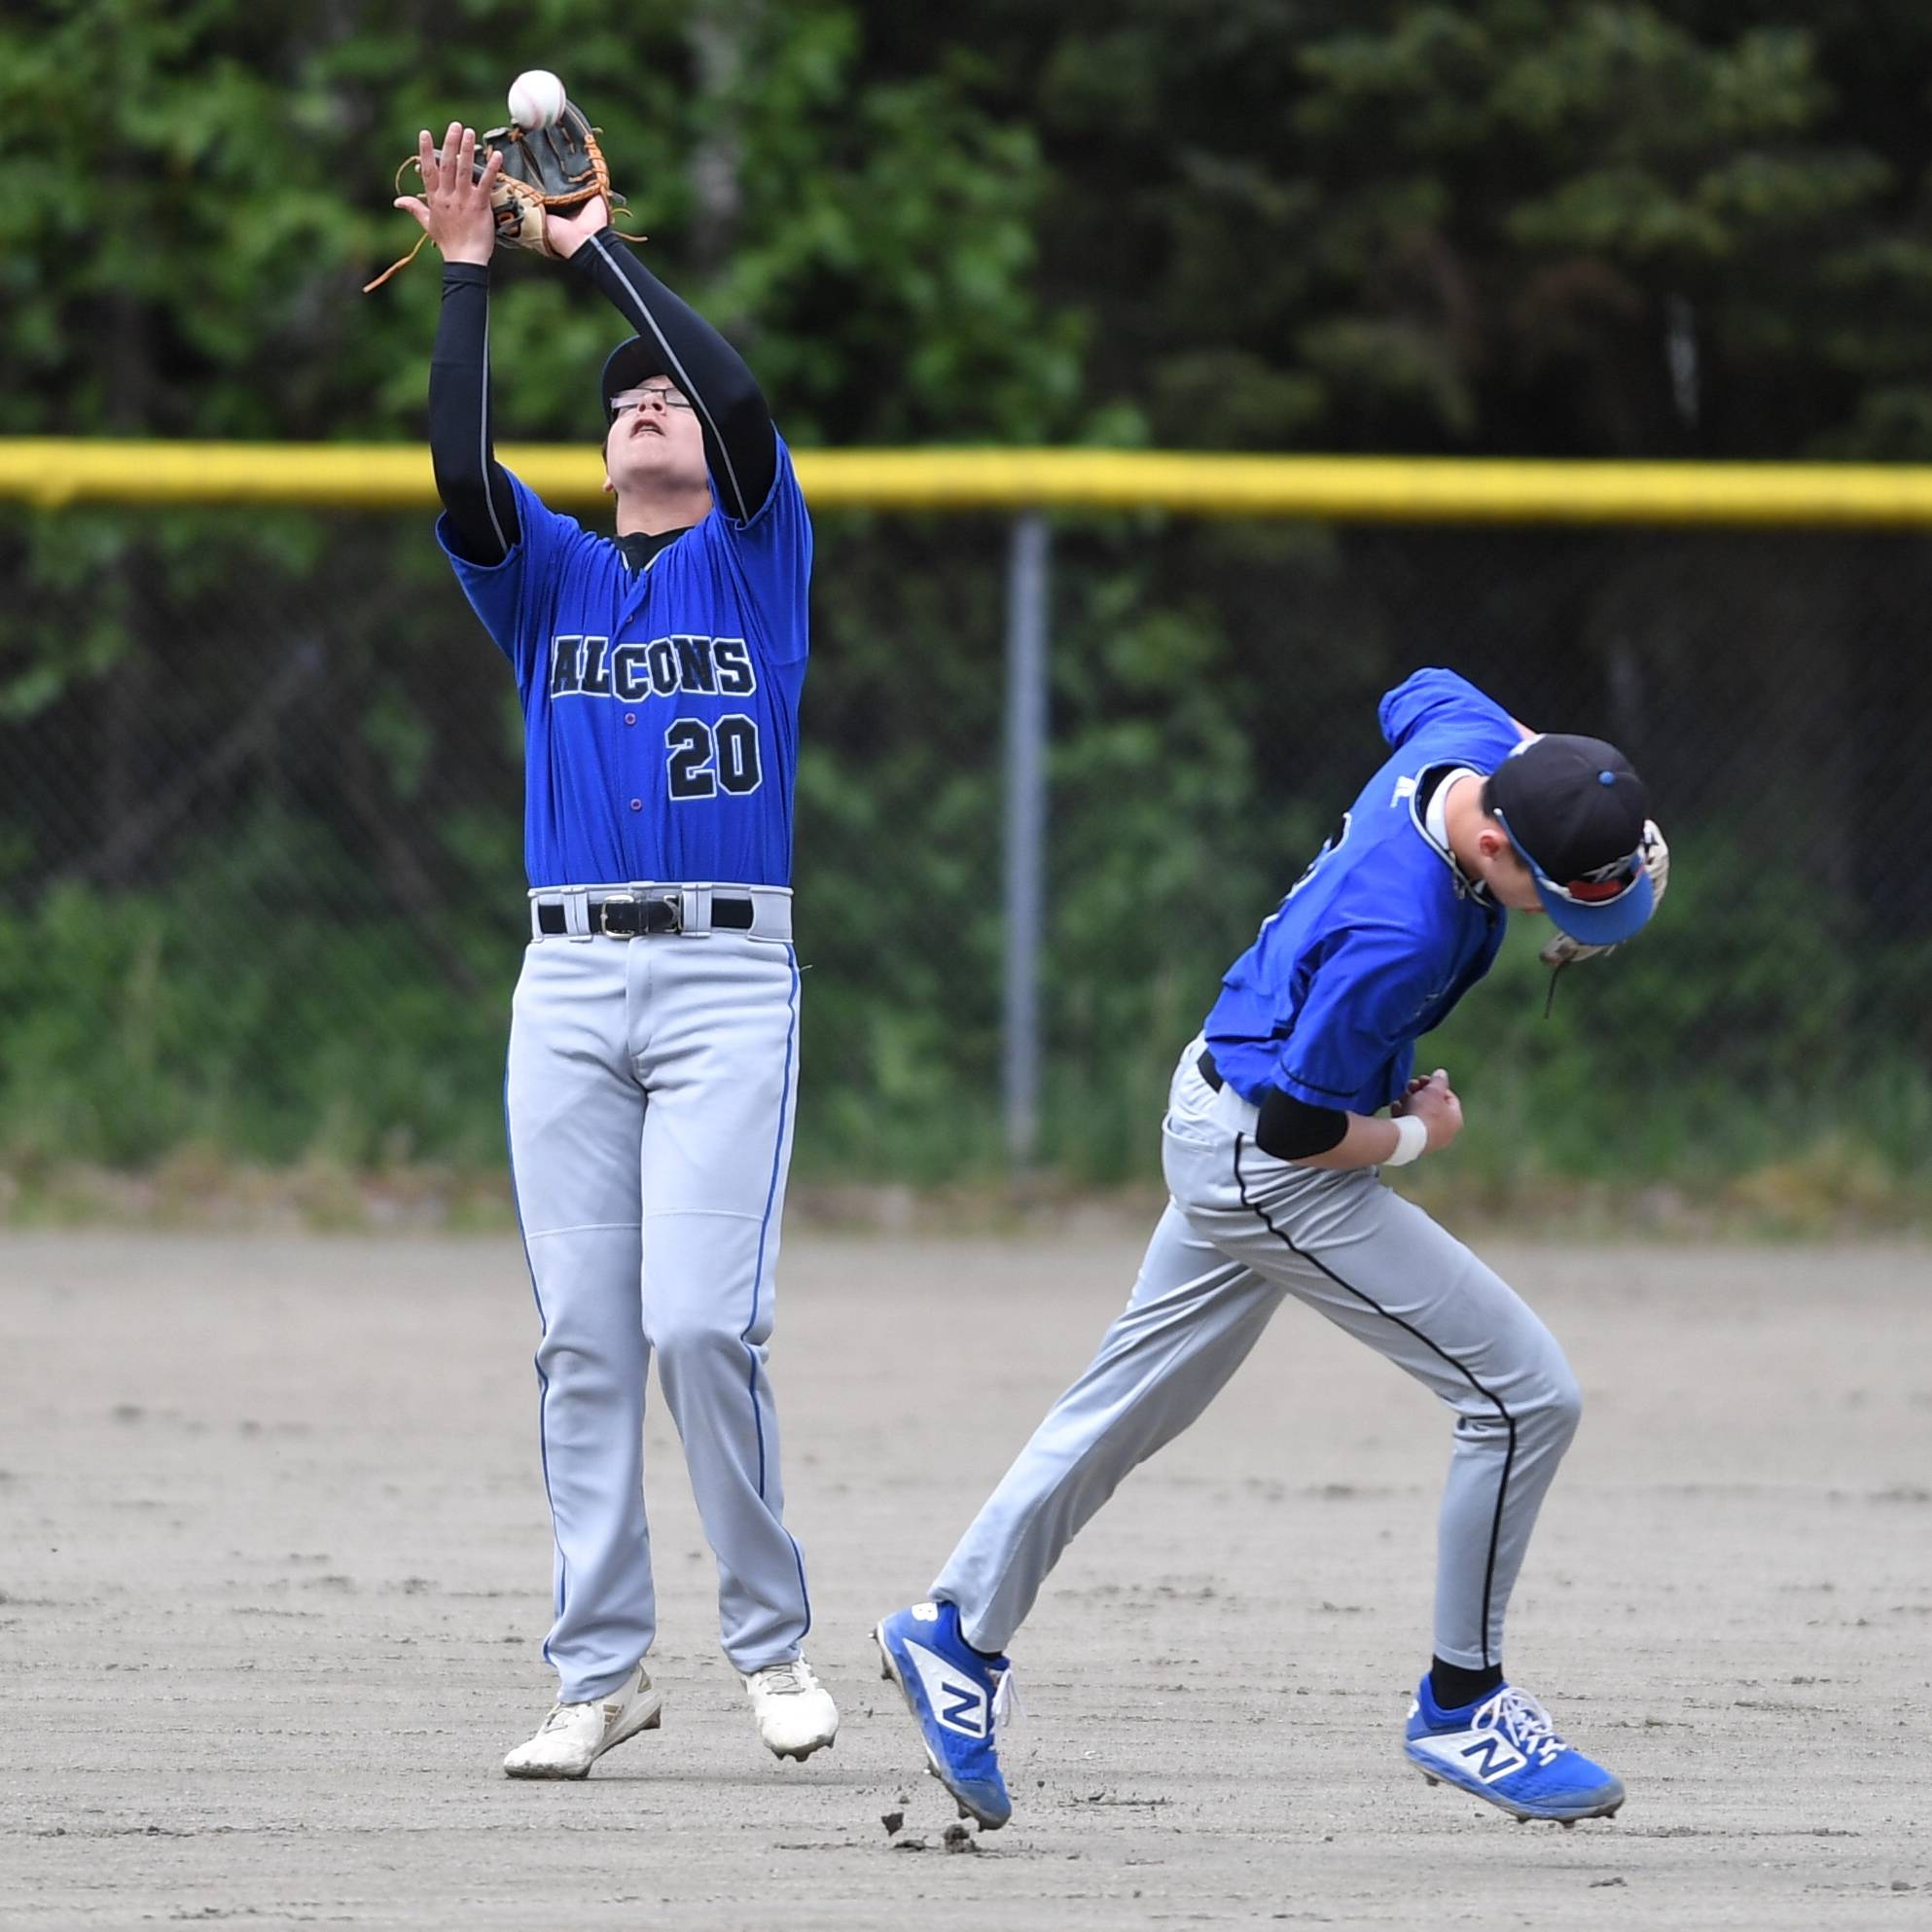 Thunder Mountain's Oliver Mendoza catches a fly all against Sitka as teammate Bryson Echiverri ducks out of the way during the Region V Baseball Championship at Adair-Kennedy Memorial Park on Friday, May 24, 2019. (Michael Penn | Juneau Empire)